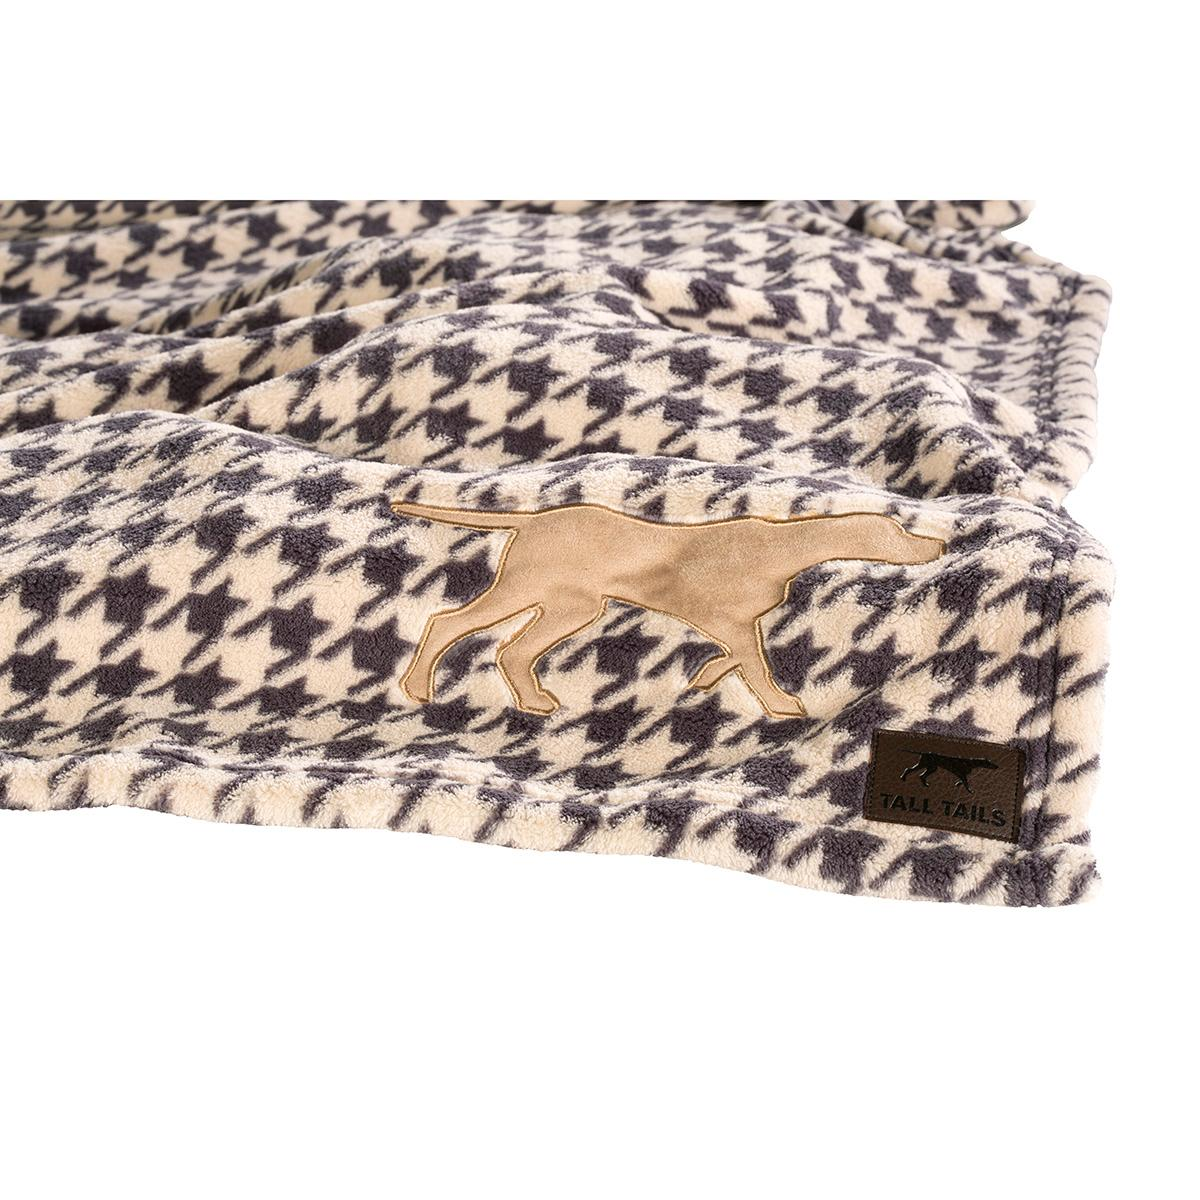 Tall Tails Houndstooth Fleece Dog Blanket with Dog Applique